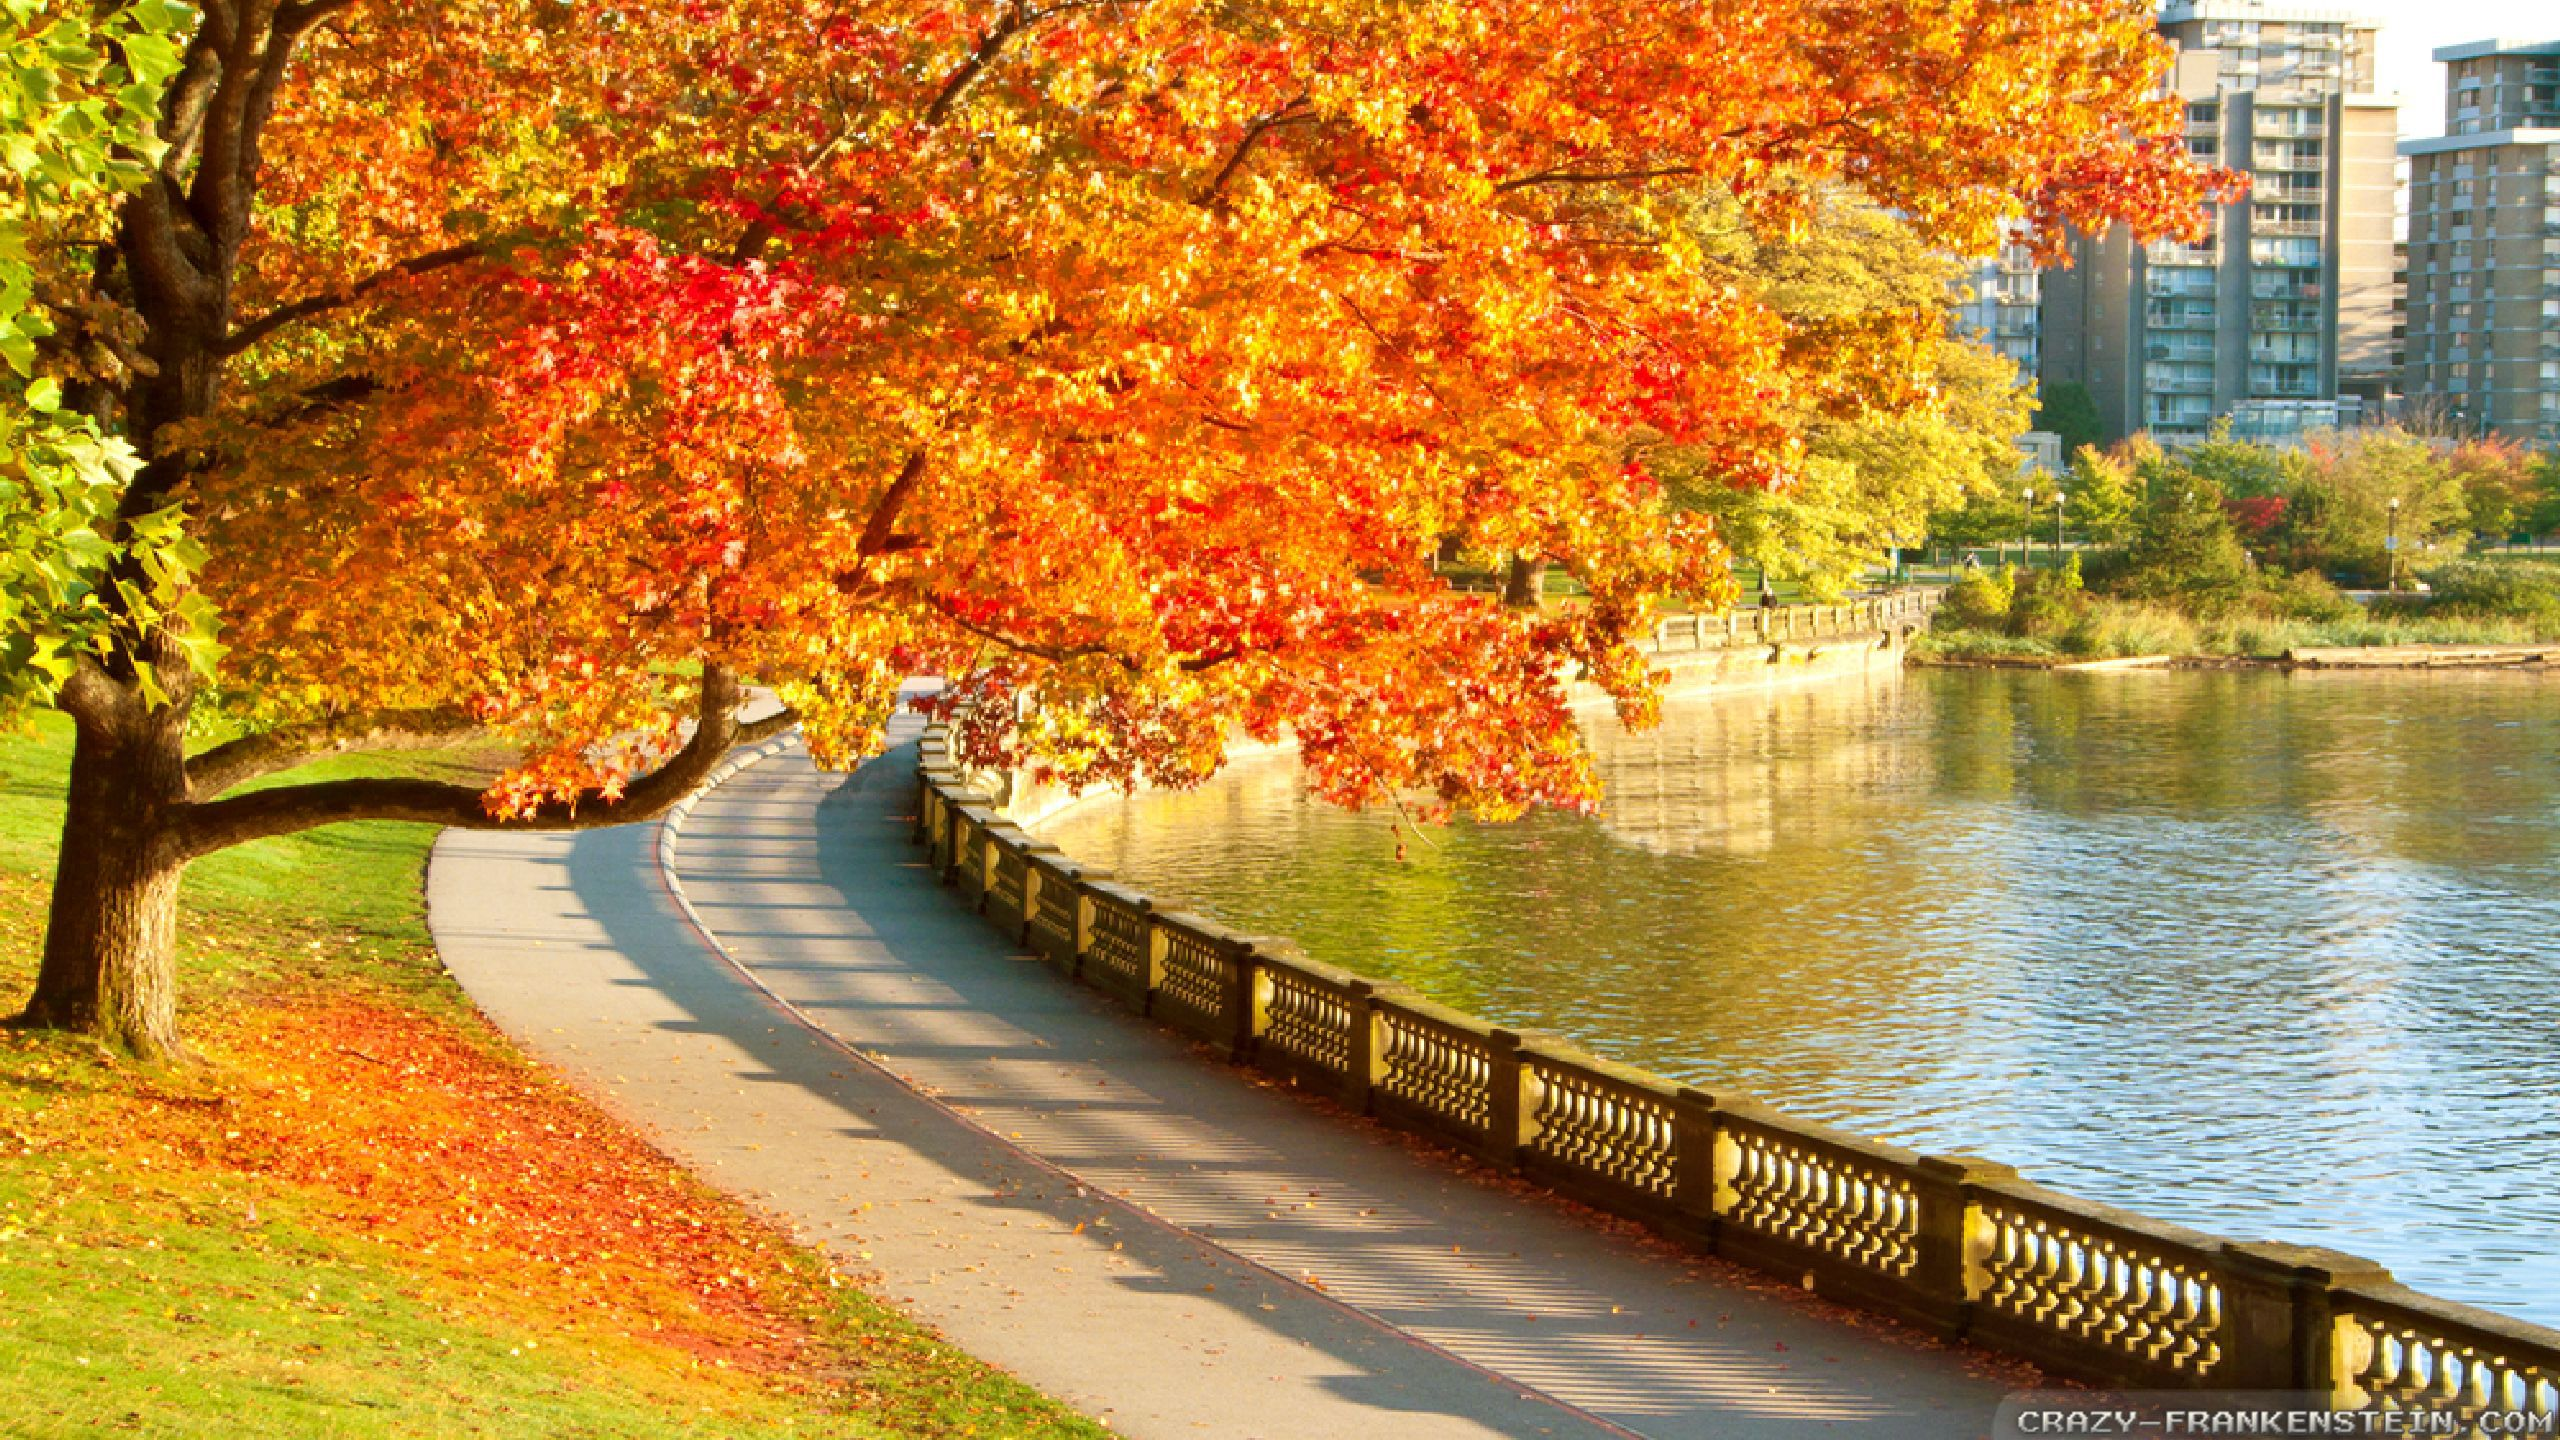 Free Fall Bc Nature Wallpaper Autumn In Canada Wallpapers 2 Seasonal Crazy Frankenstein